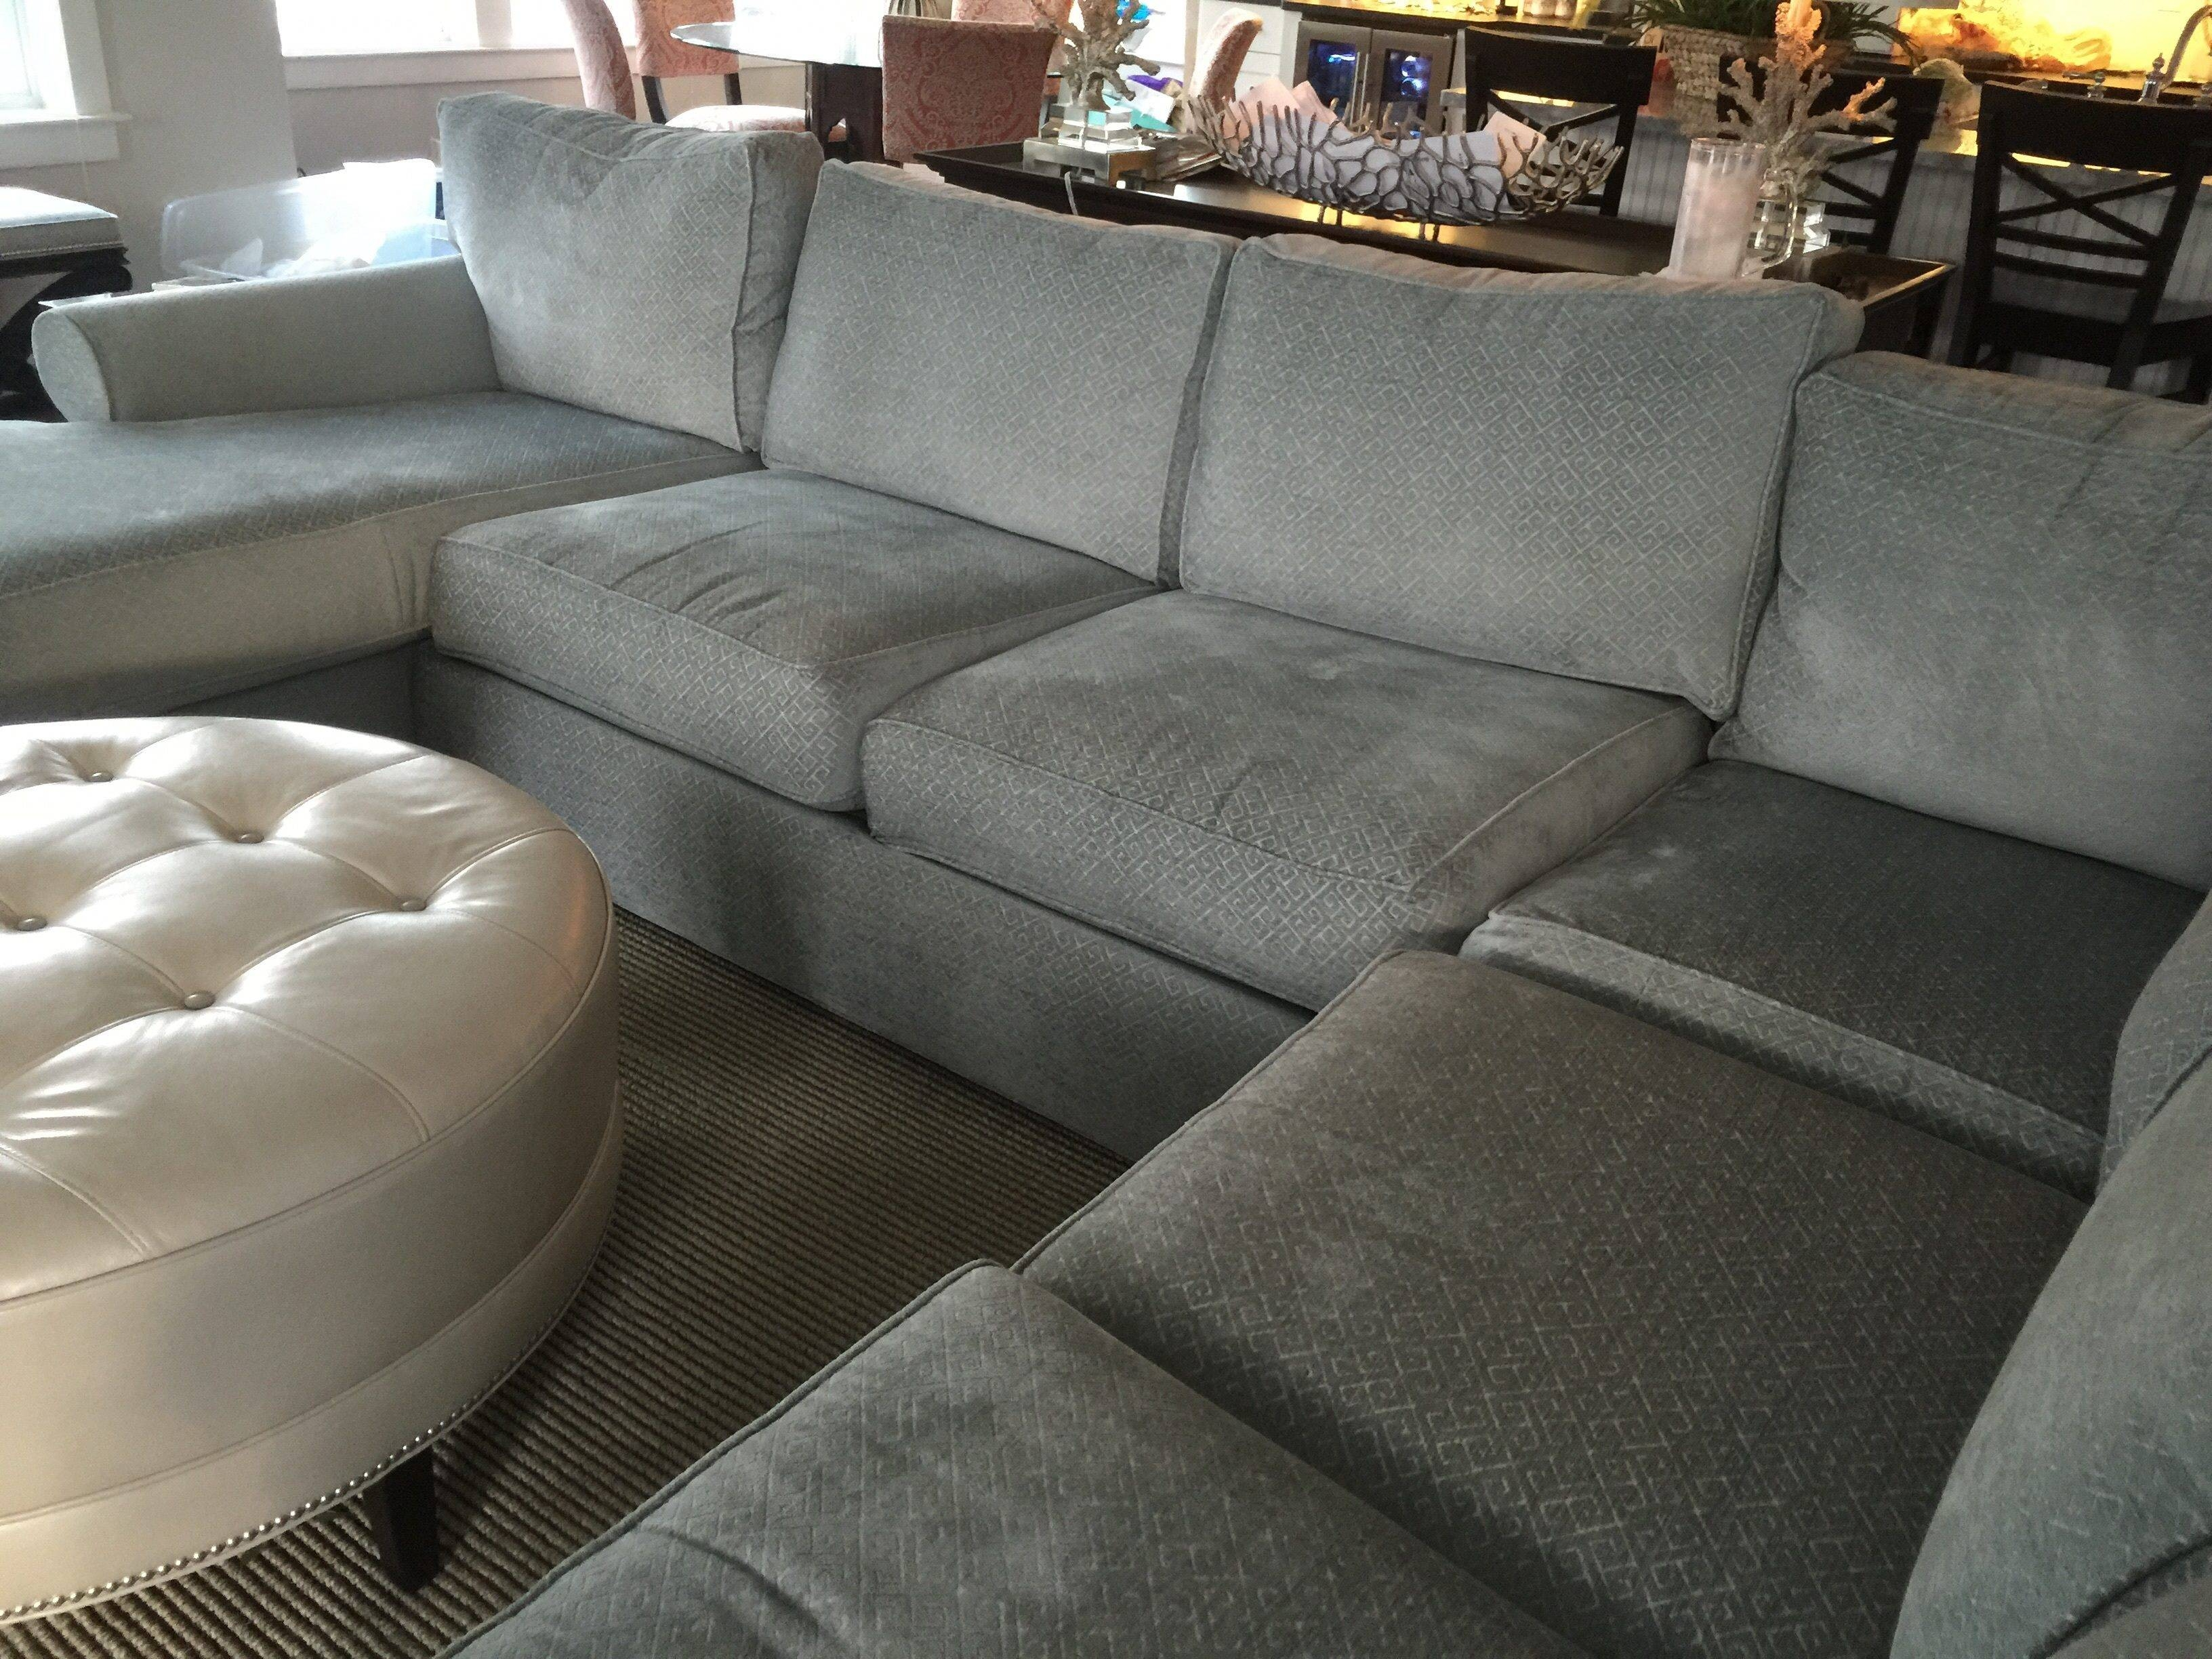 Decor: Grey Sectional Sofacraigslist West Palm Beach Furniture regarding Craigslist Sectional Sofa (Image 6 of 30)